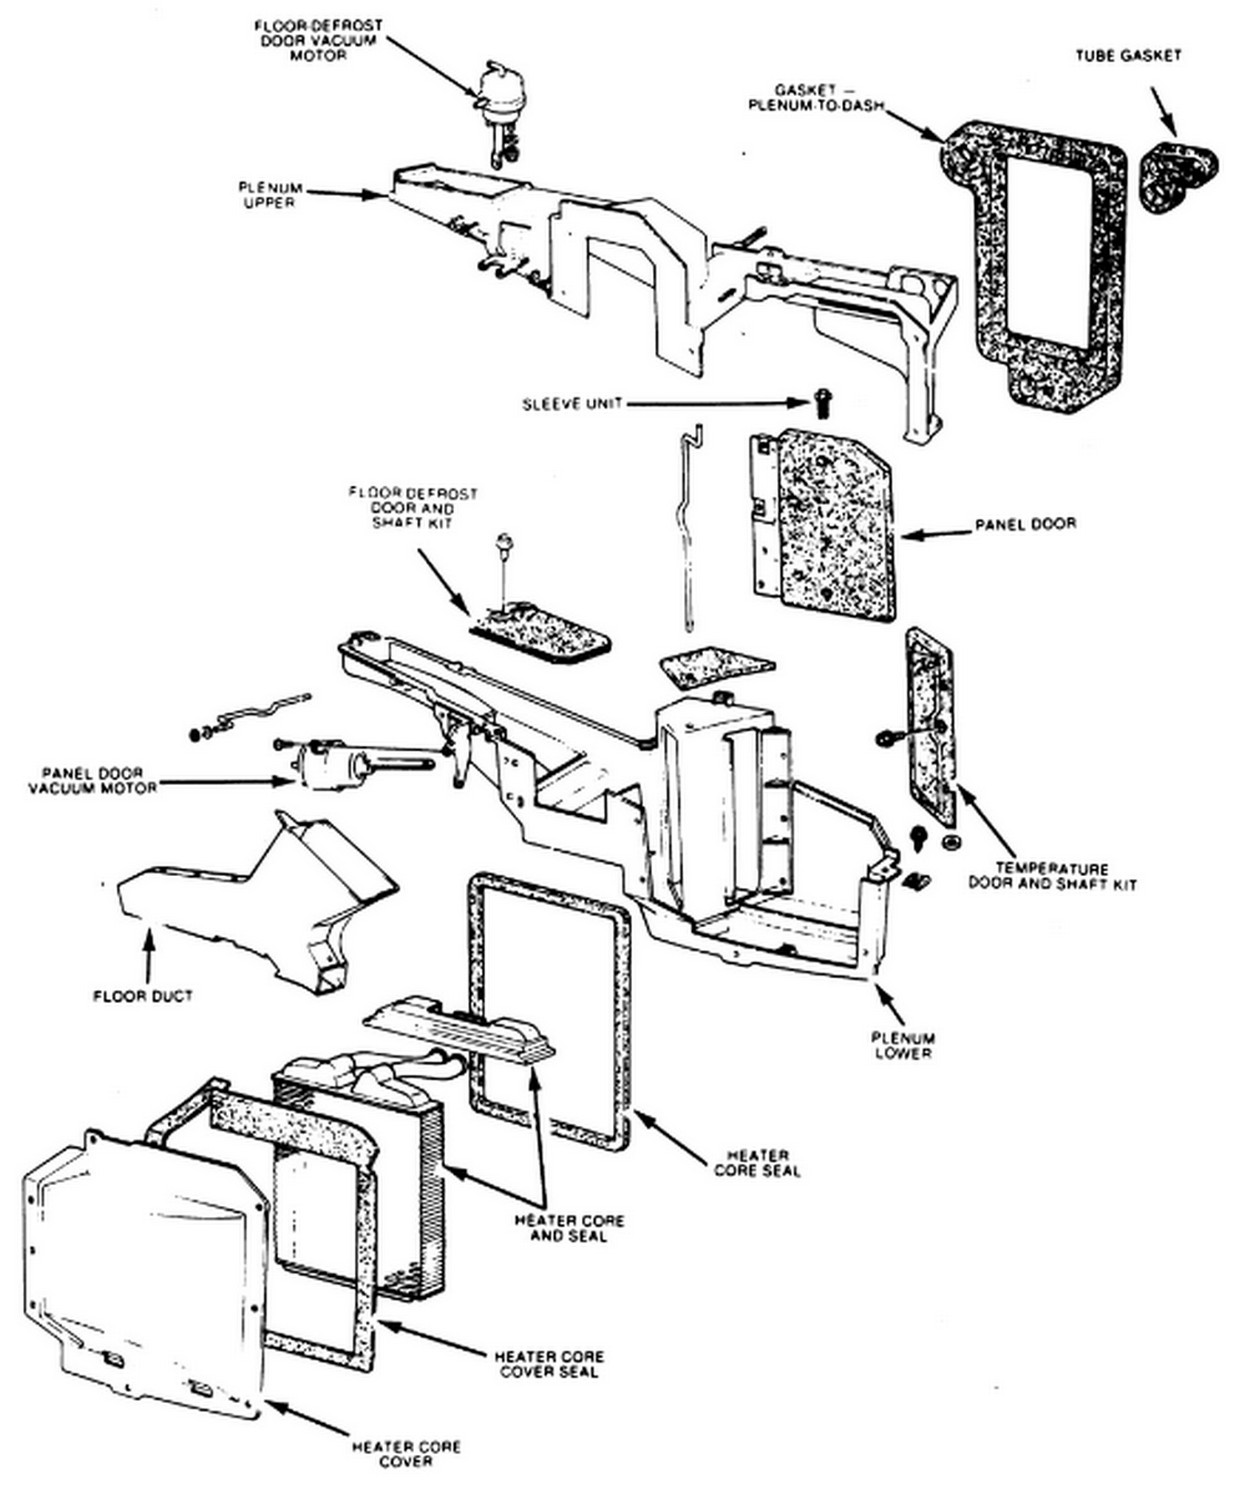 Need Instructions To Change Out A Heater Core